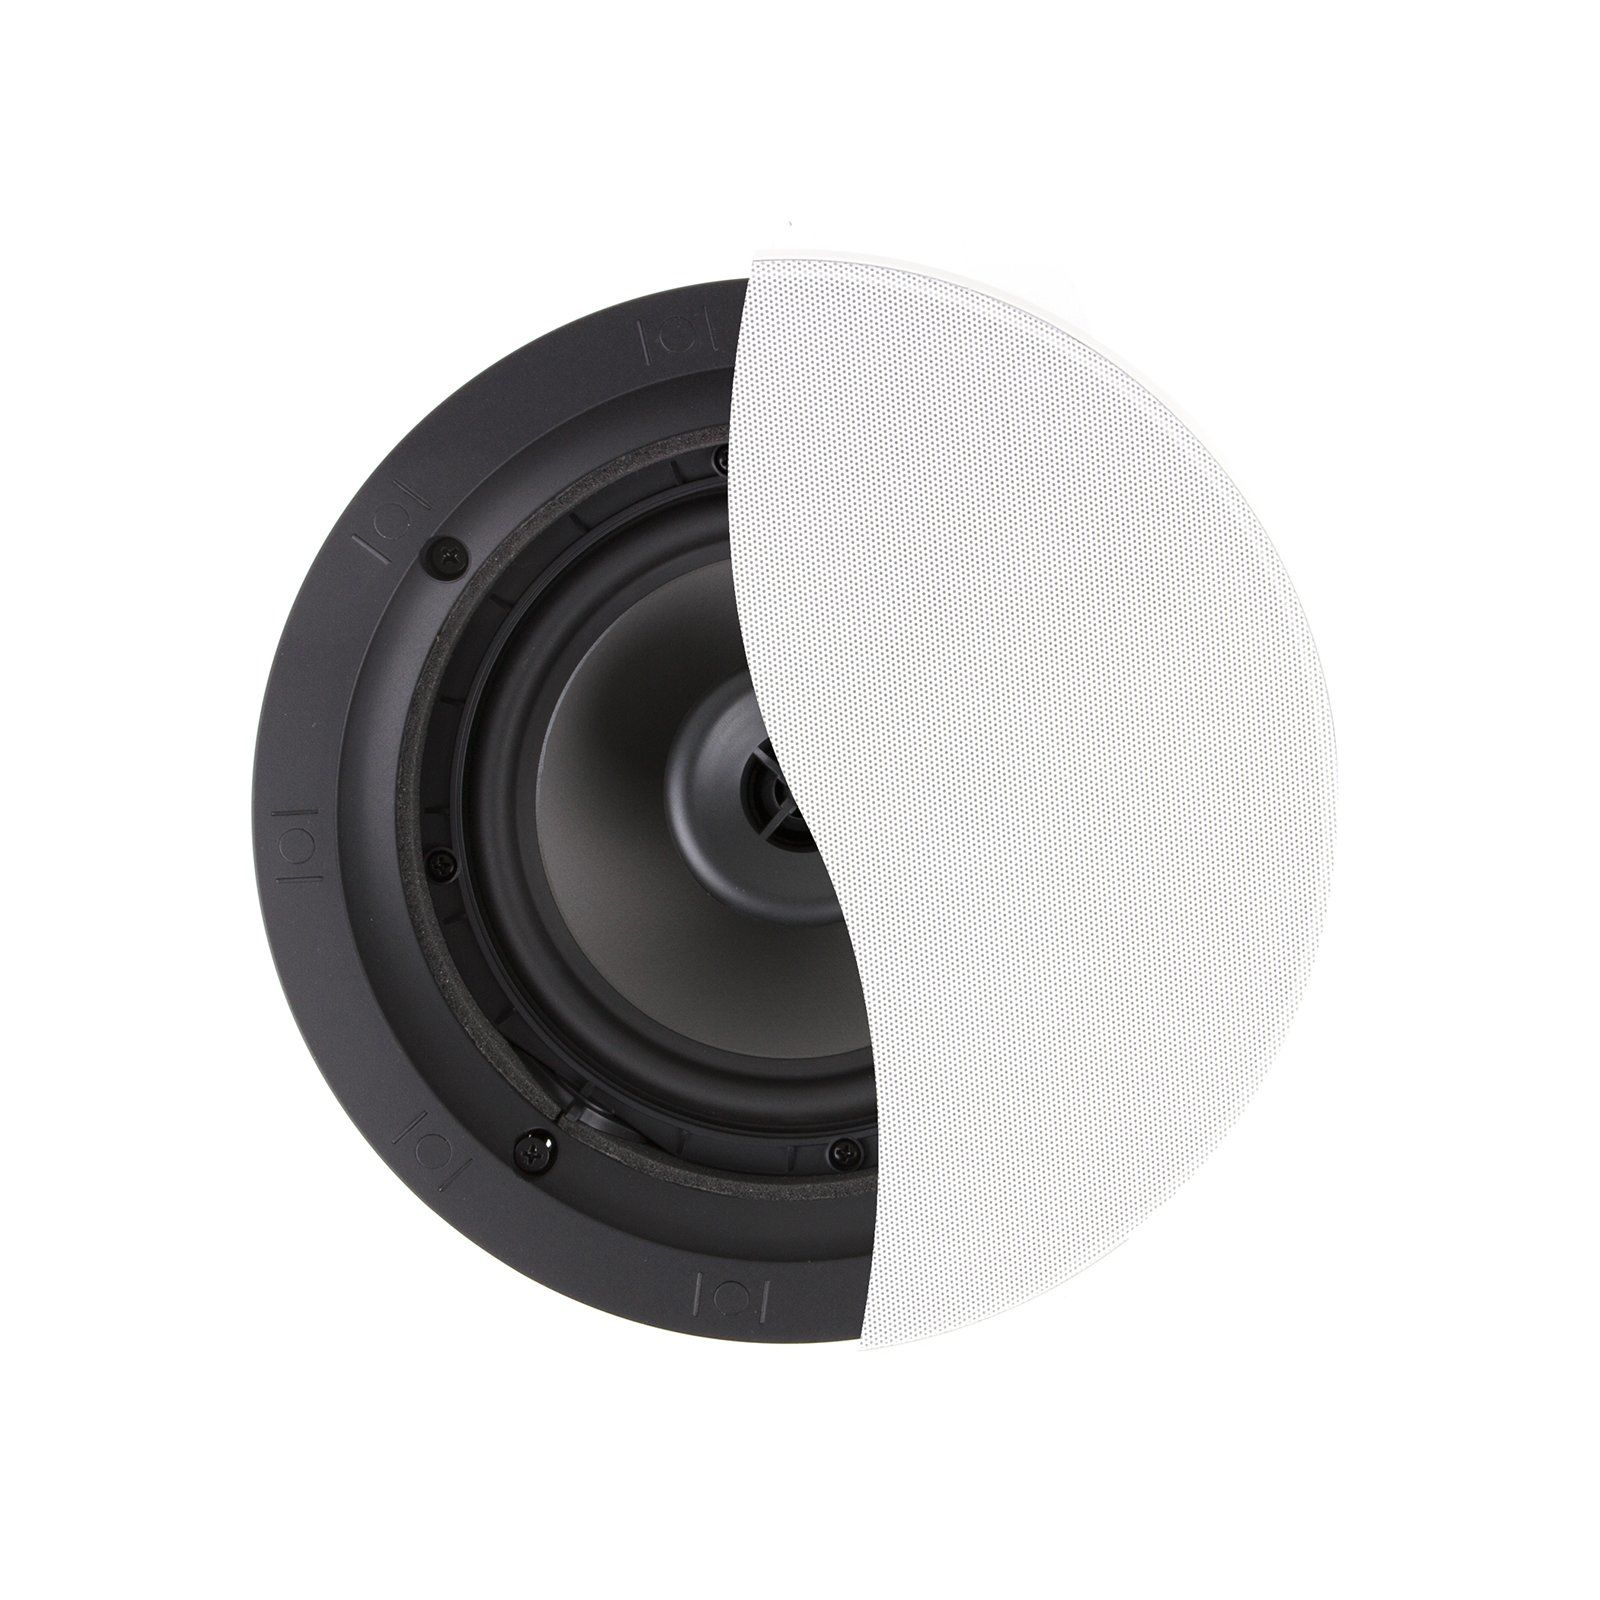 In ceiling speakers examples of garnishes